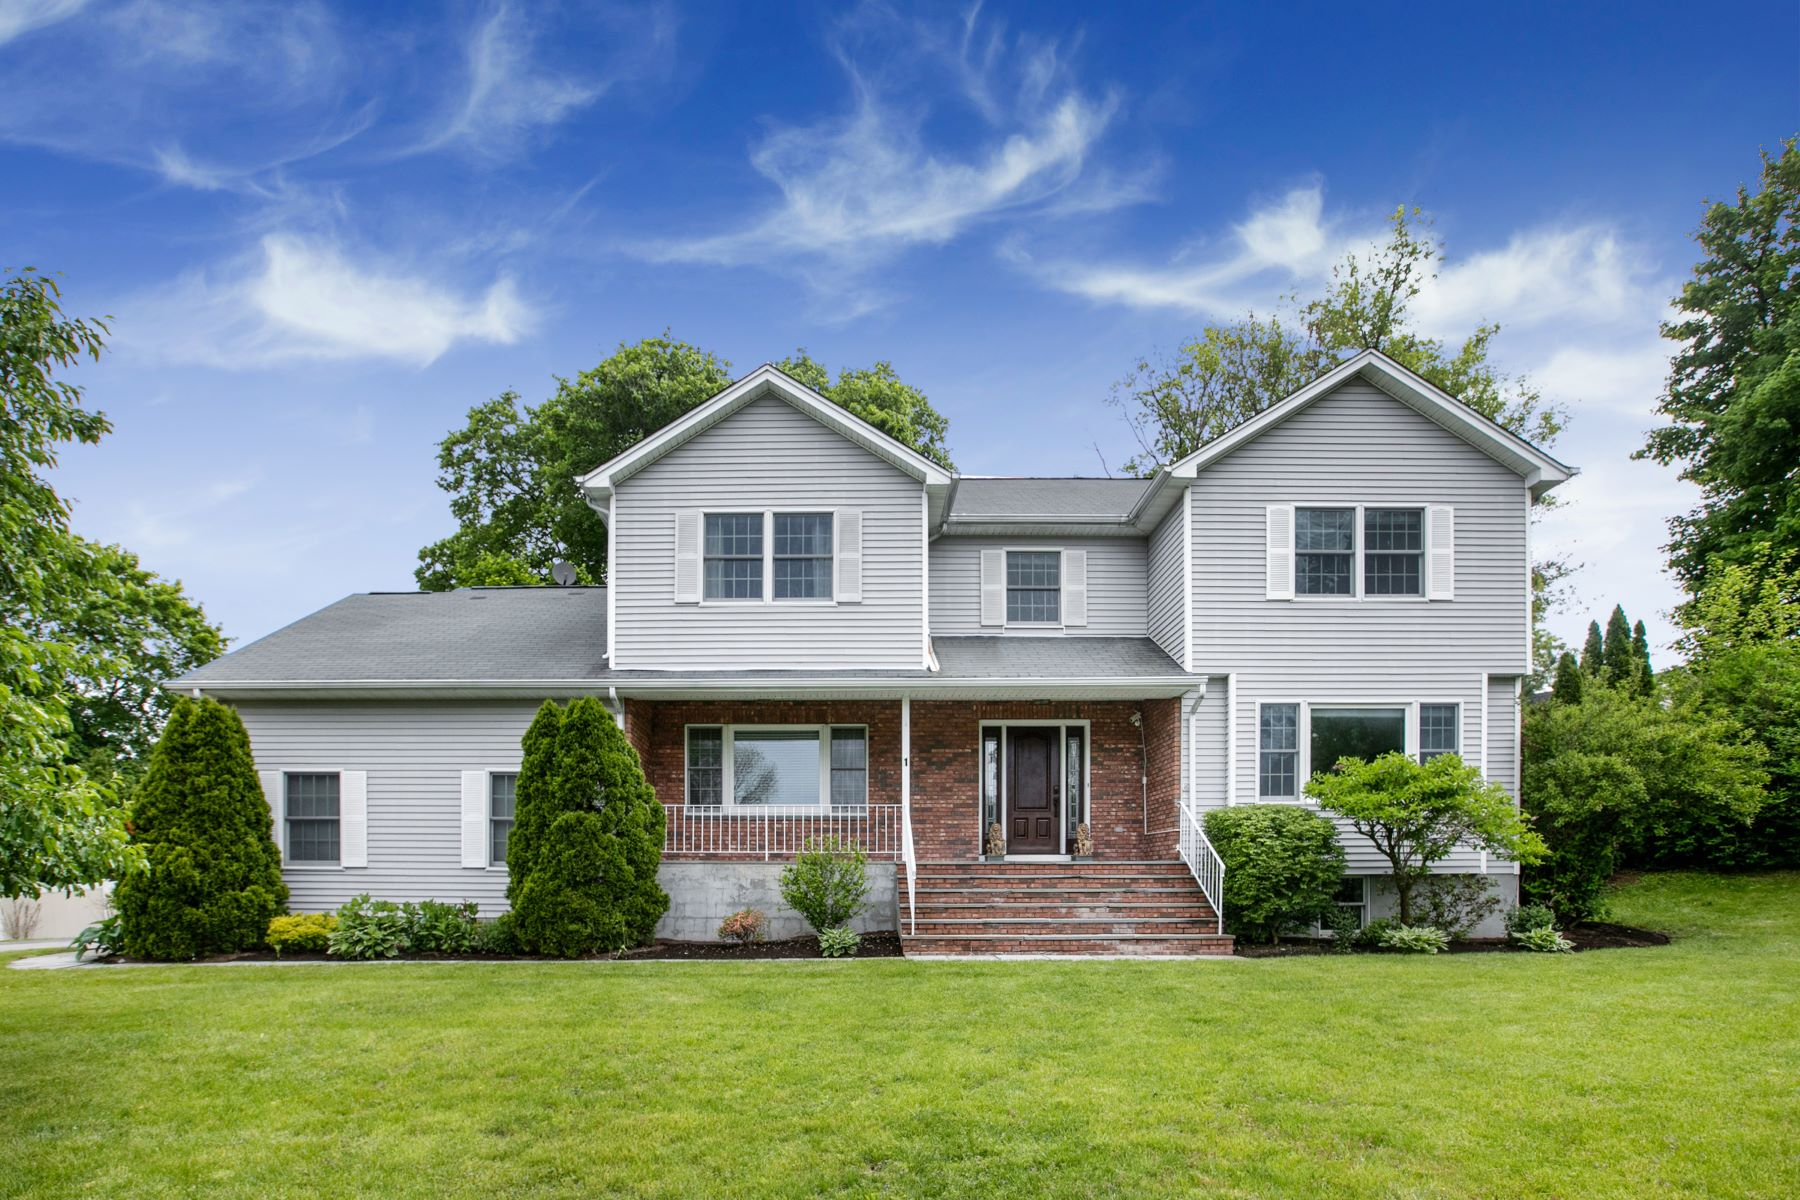 Single Family Homes for Active at 1 Peaceable Court Thornwood, New York 10594 United States